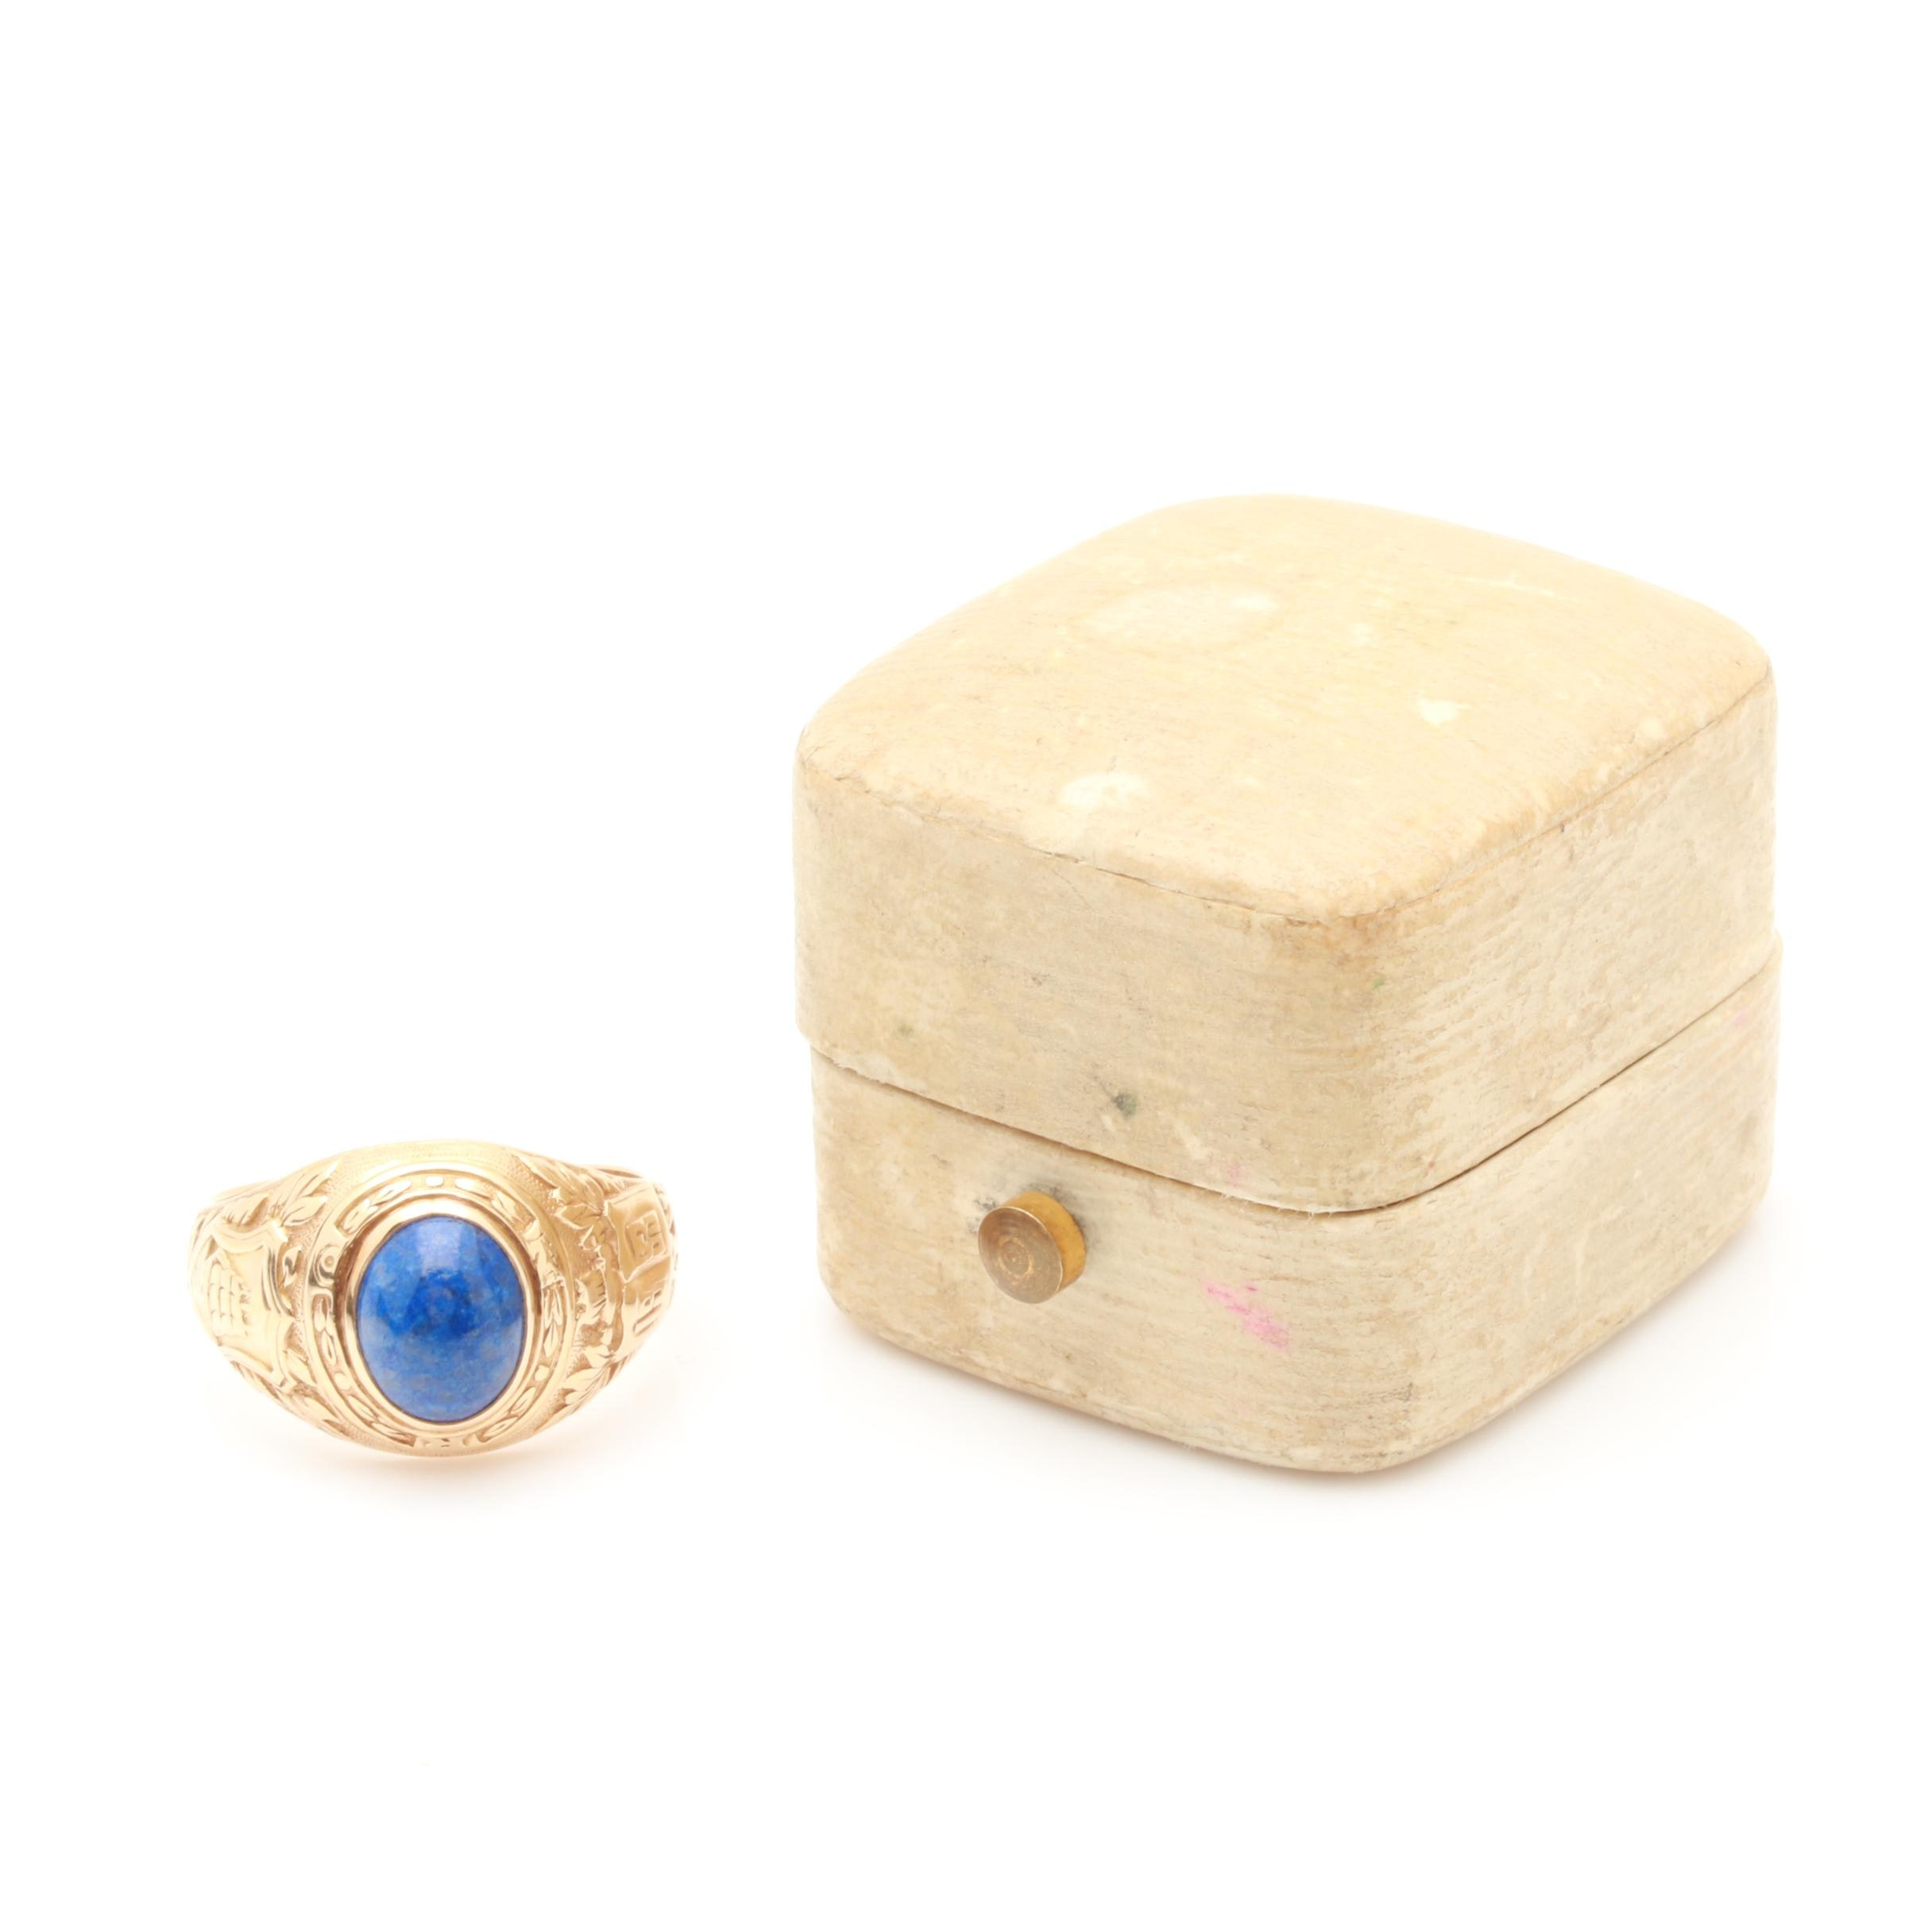 Vintage Tiffany & Co. 14K Yellow Gold Lapis Lazuli Class Ring